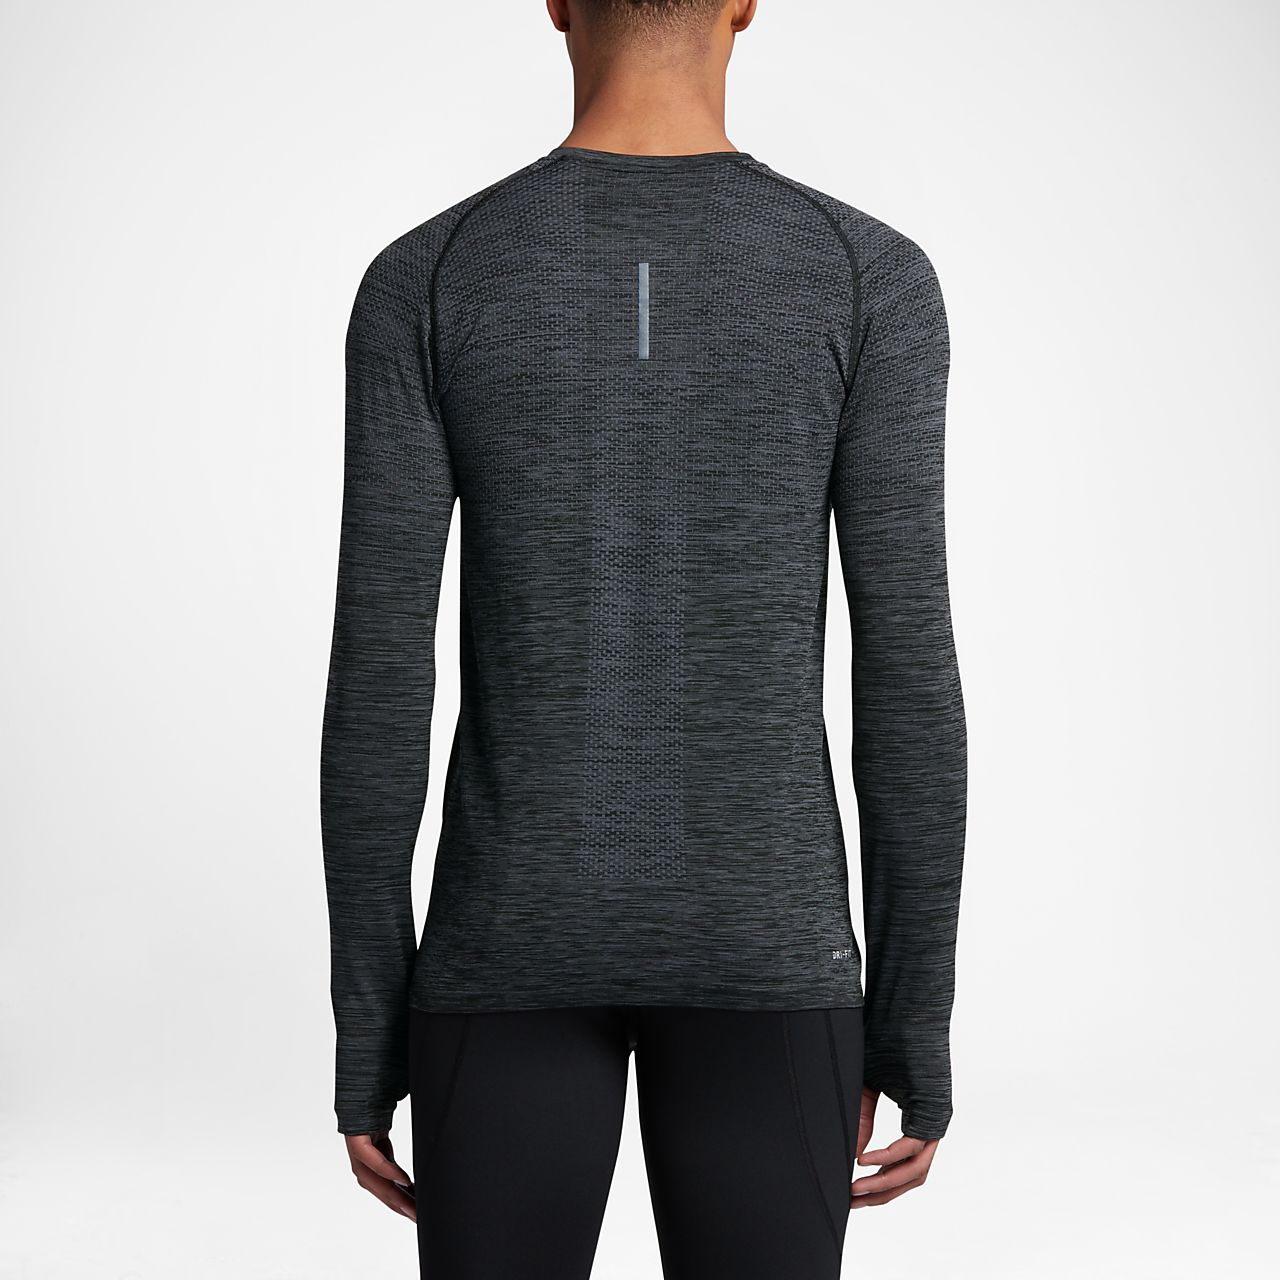 ... Nike Dri-FIT Knit Men's Long Sleeve Running Top